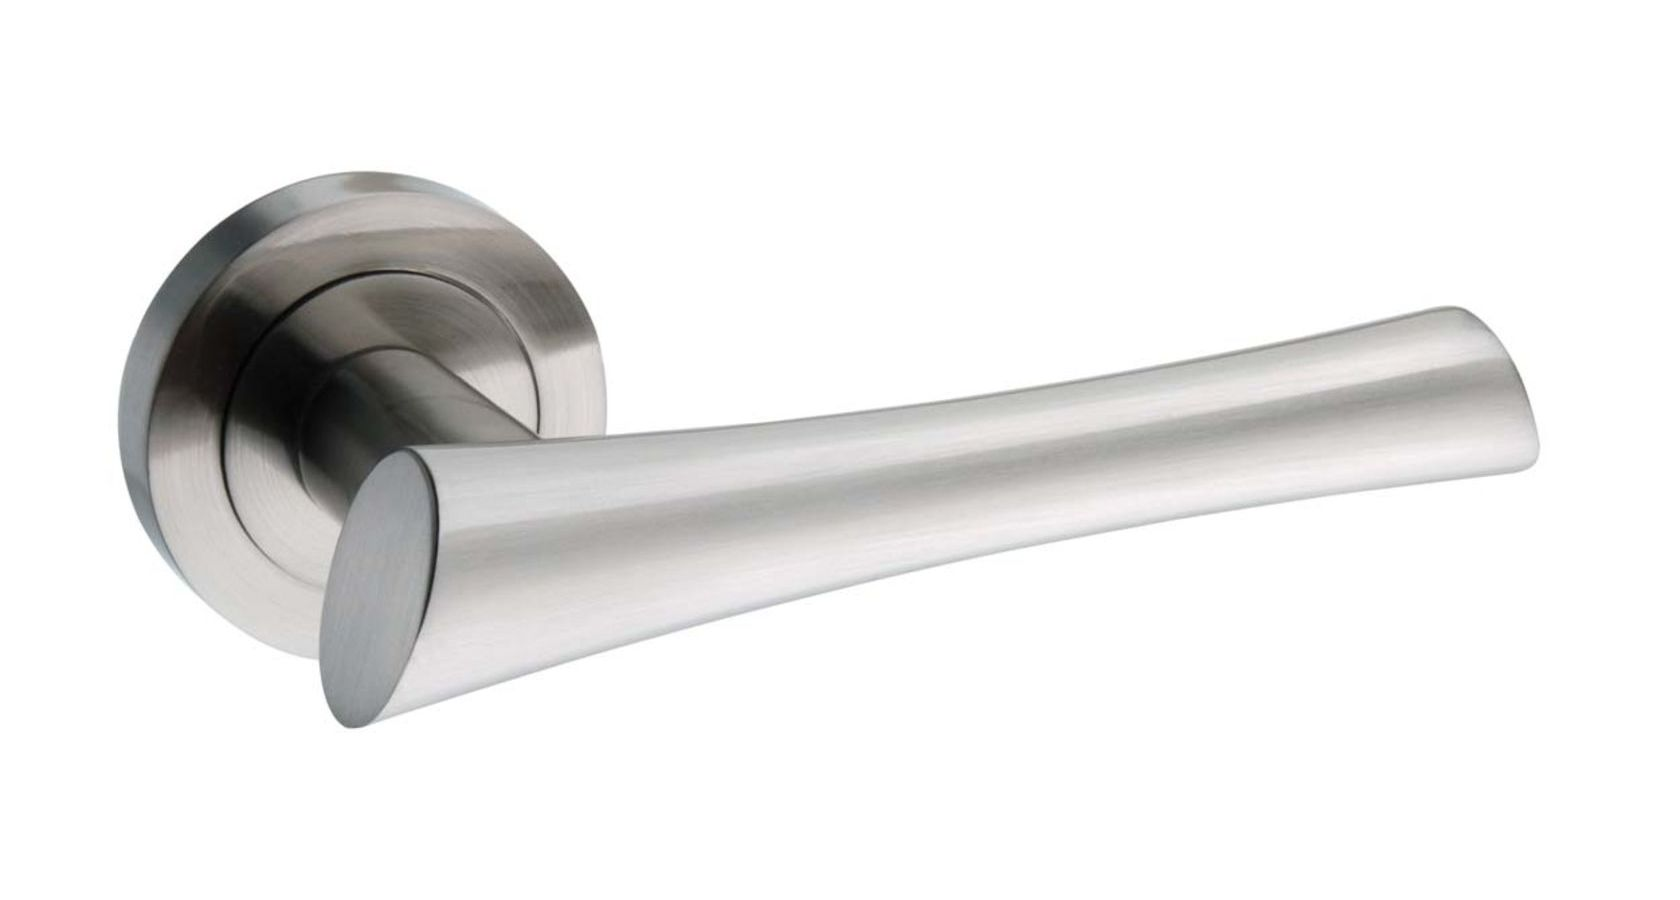 Atlantic Corsica Satin Nickel Door Handles : M-60 SN